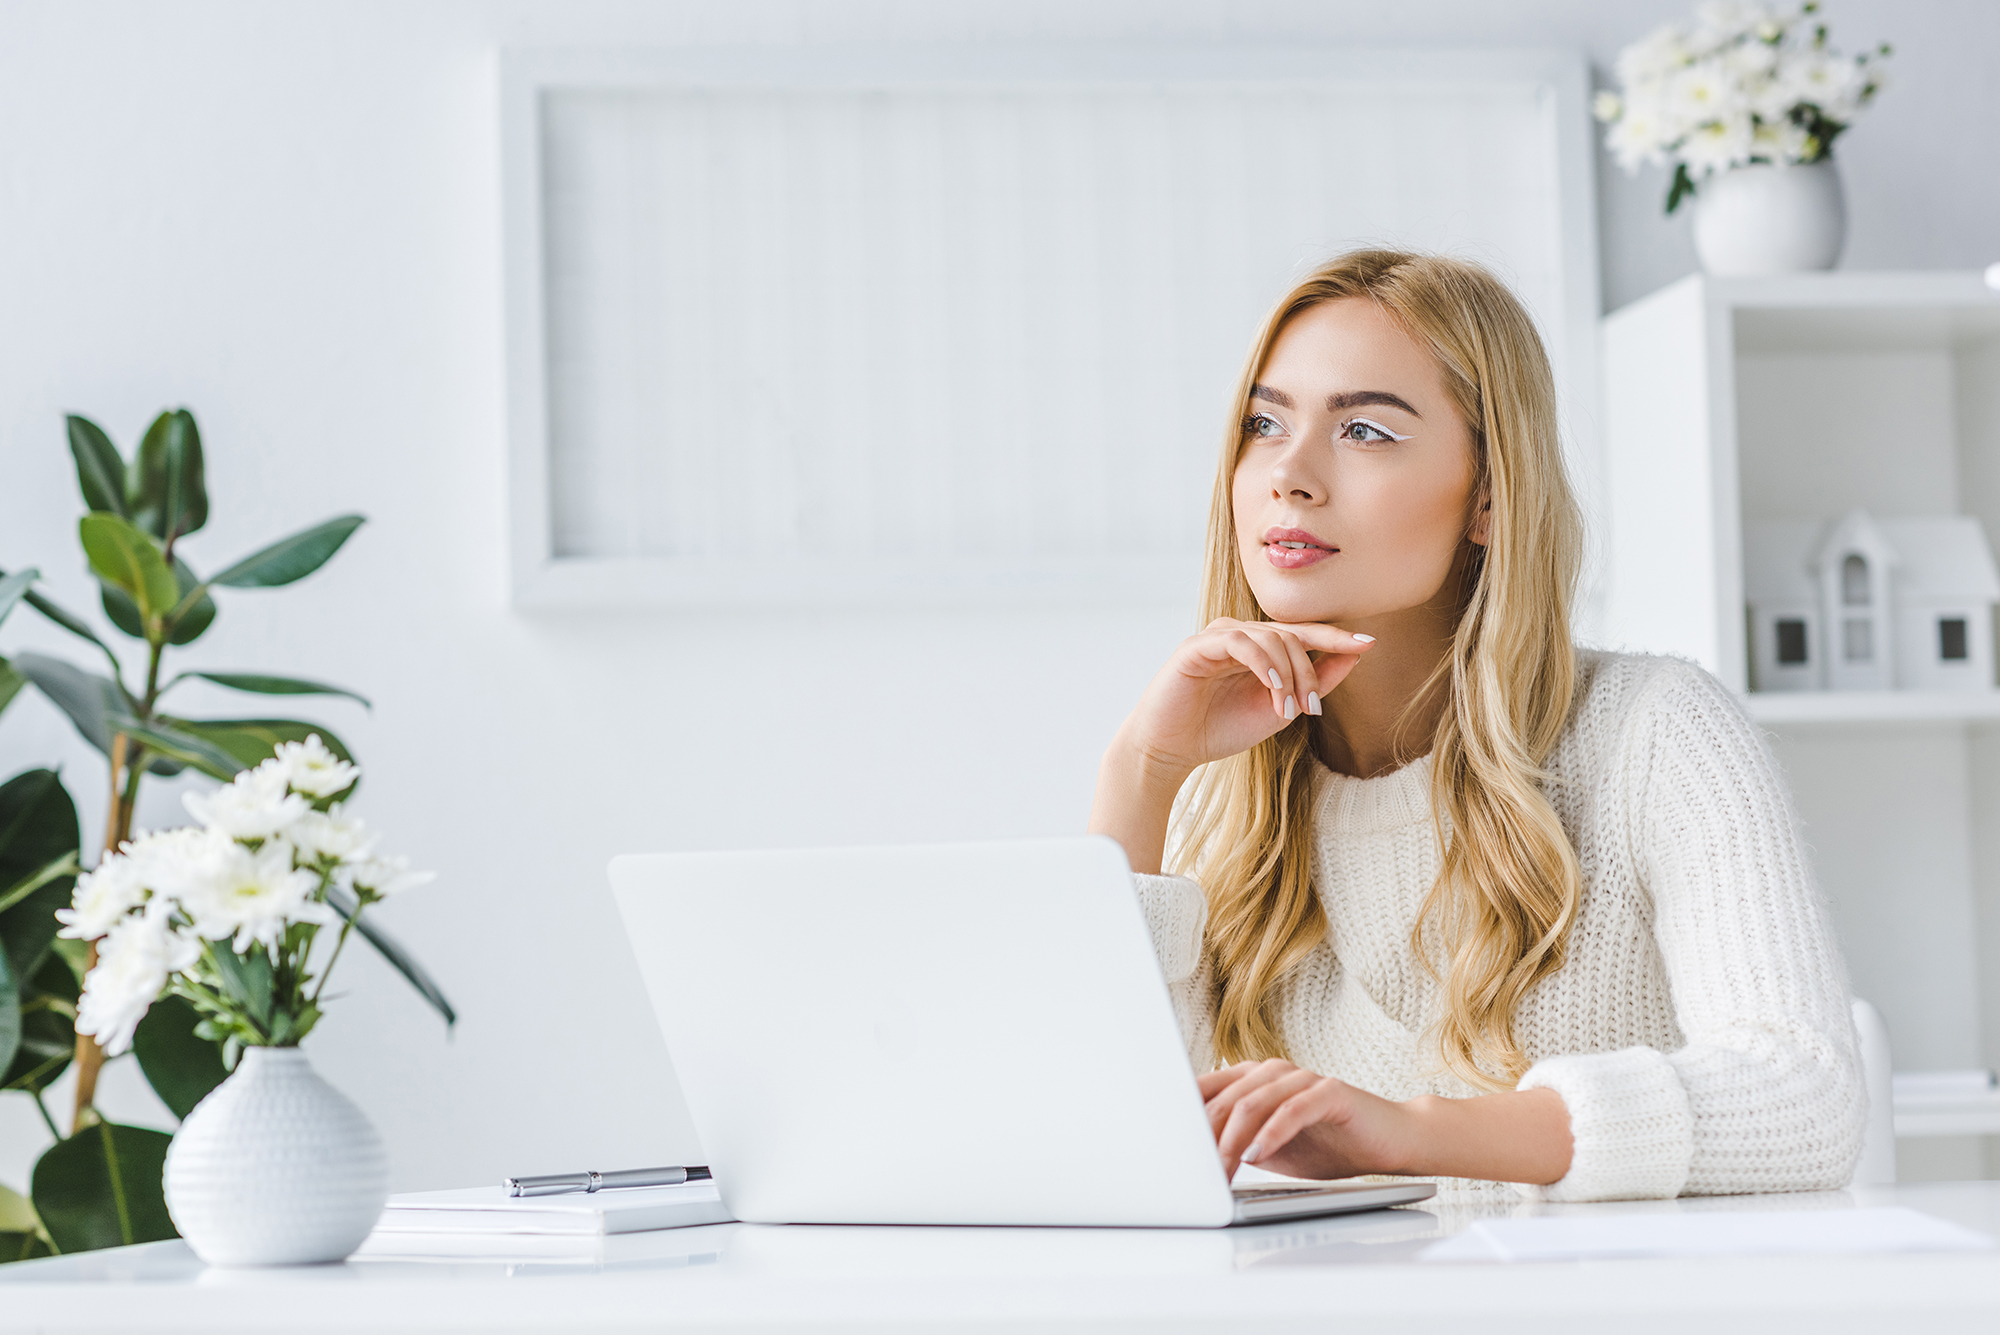 woman on laptop in white room